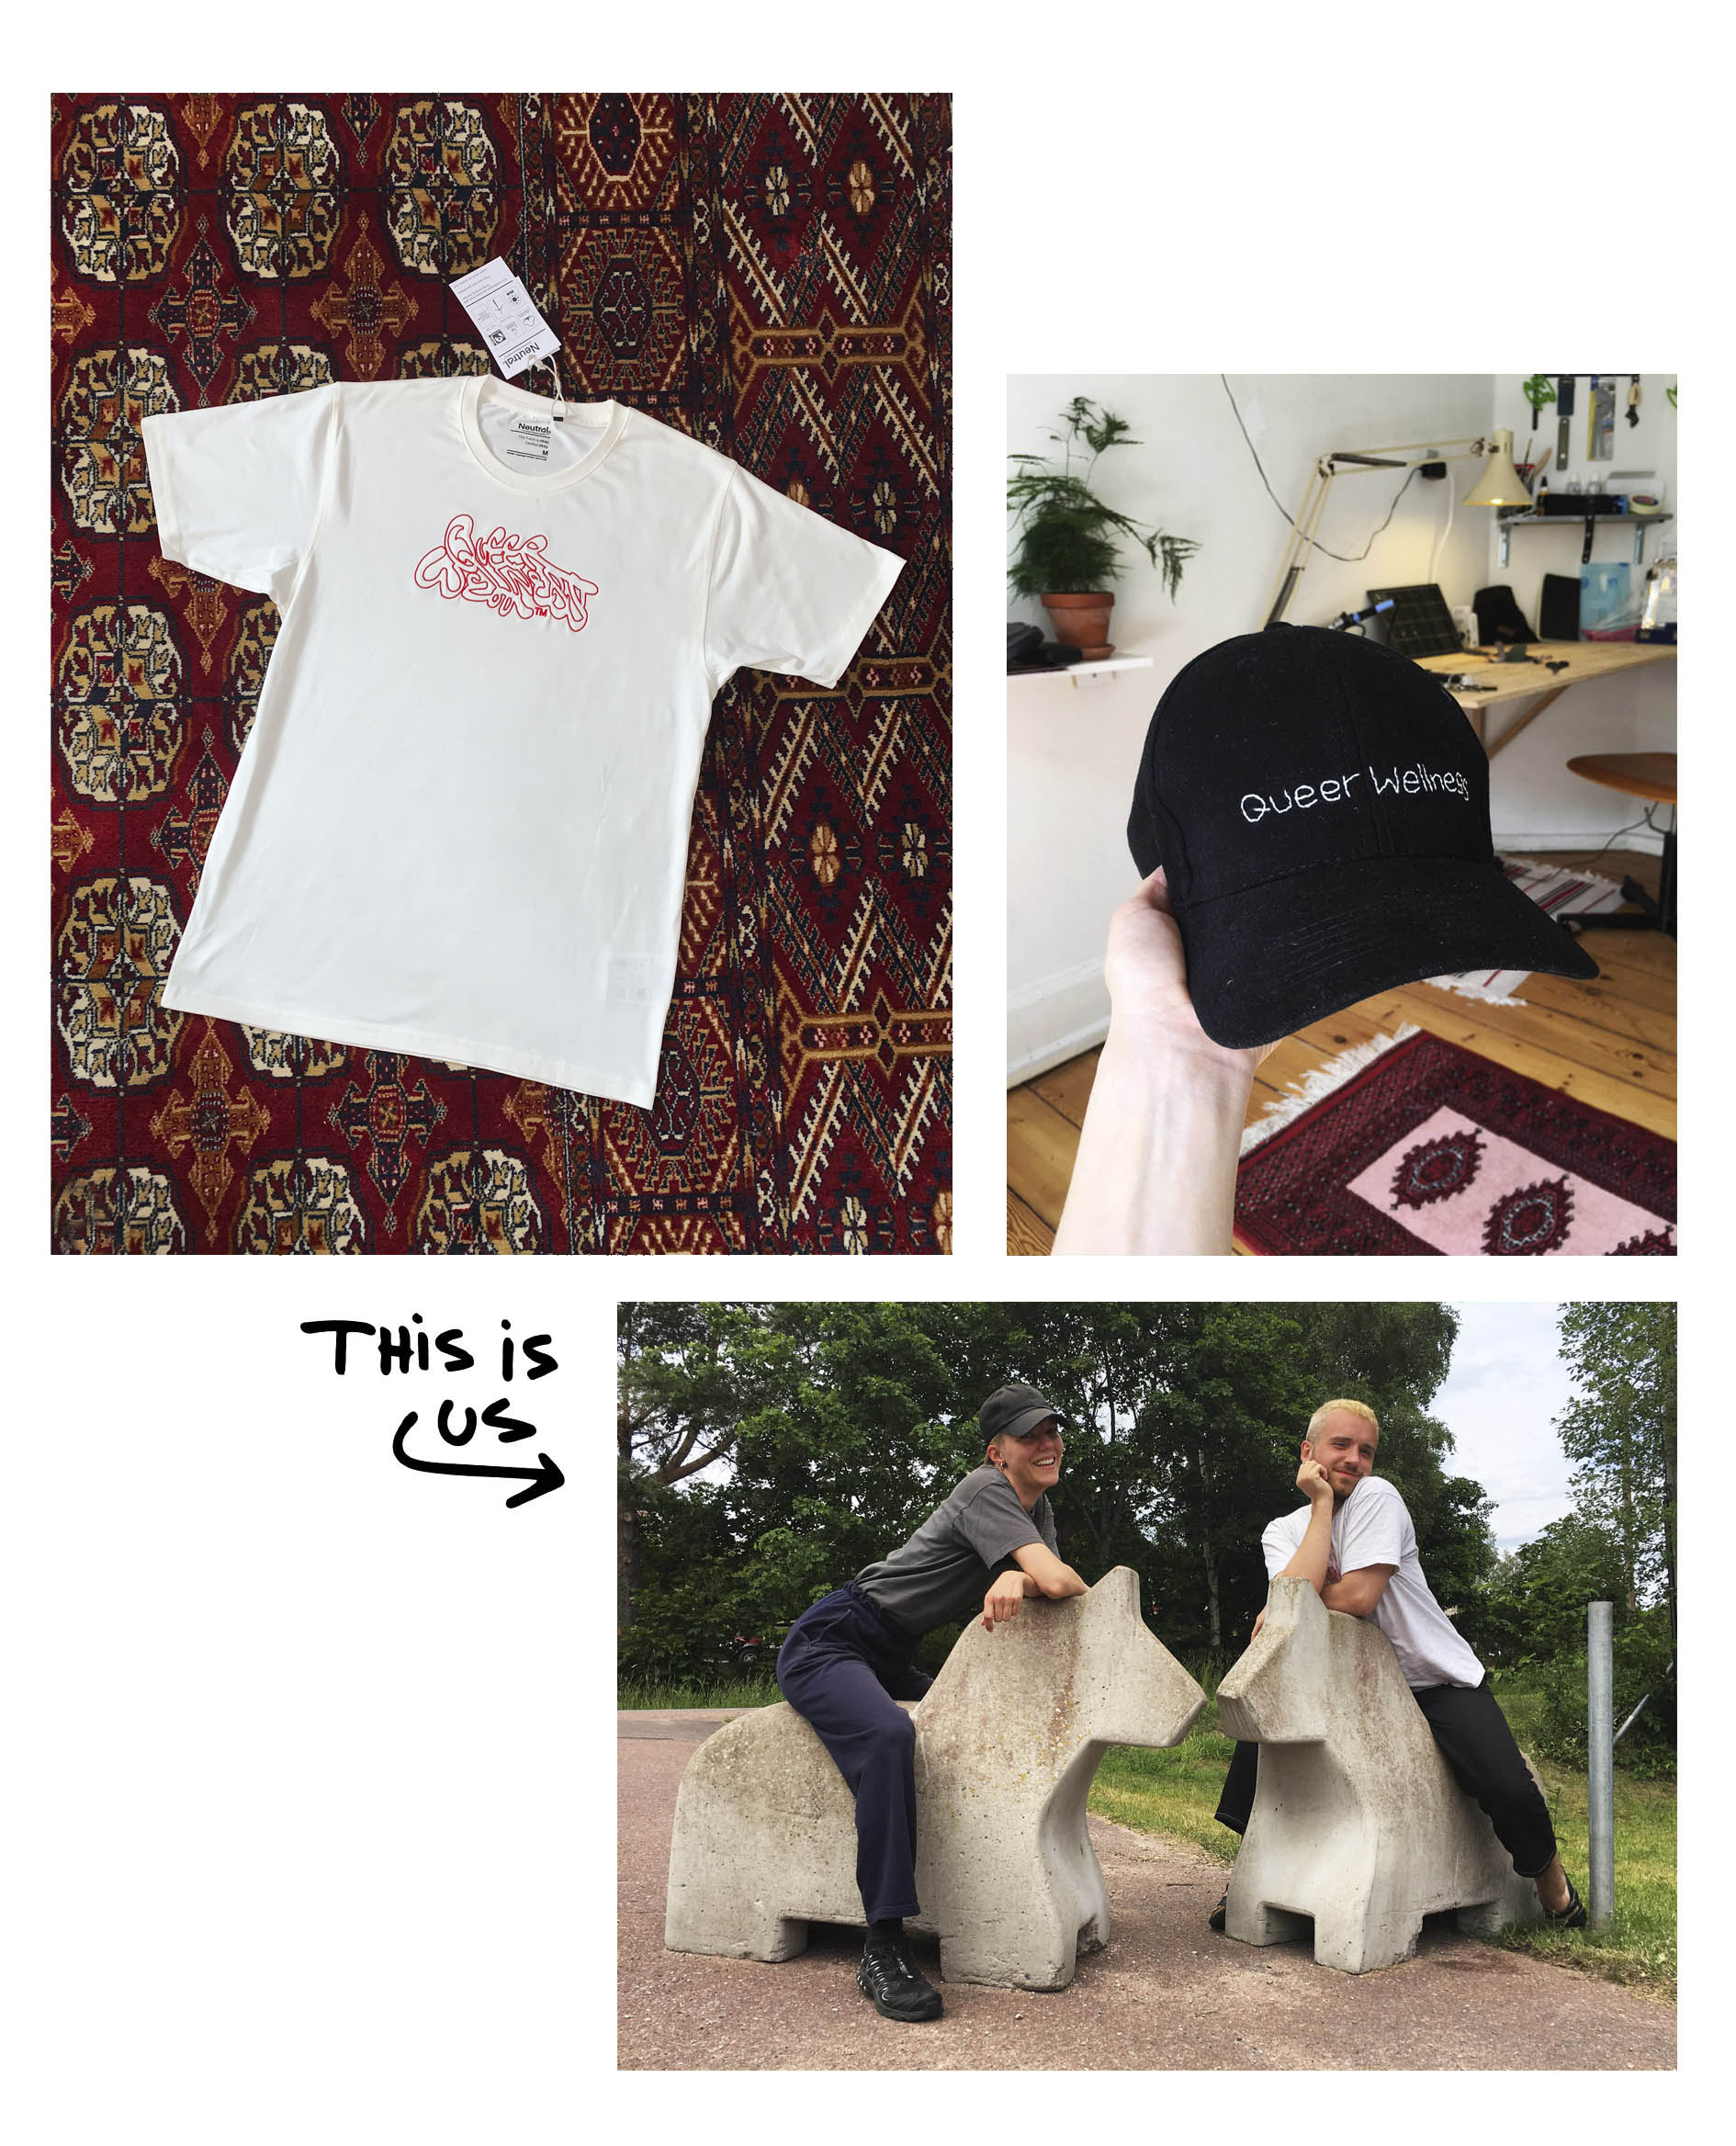 A white t-shirt with red queer wellness embroidery on a red persian carpet.  A black embroidered baseball cap. Photo of the founders Oline Marie Andersen and Max Steen on two horses made of stone.